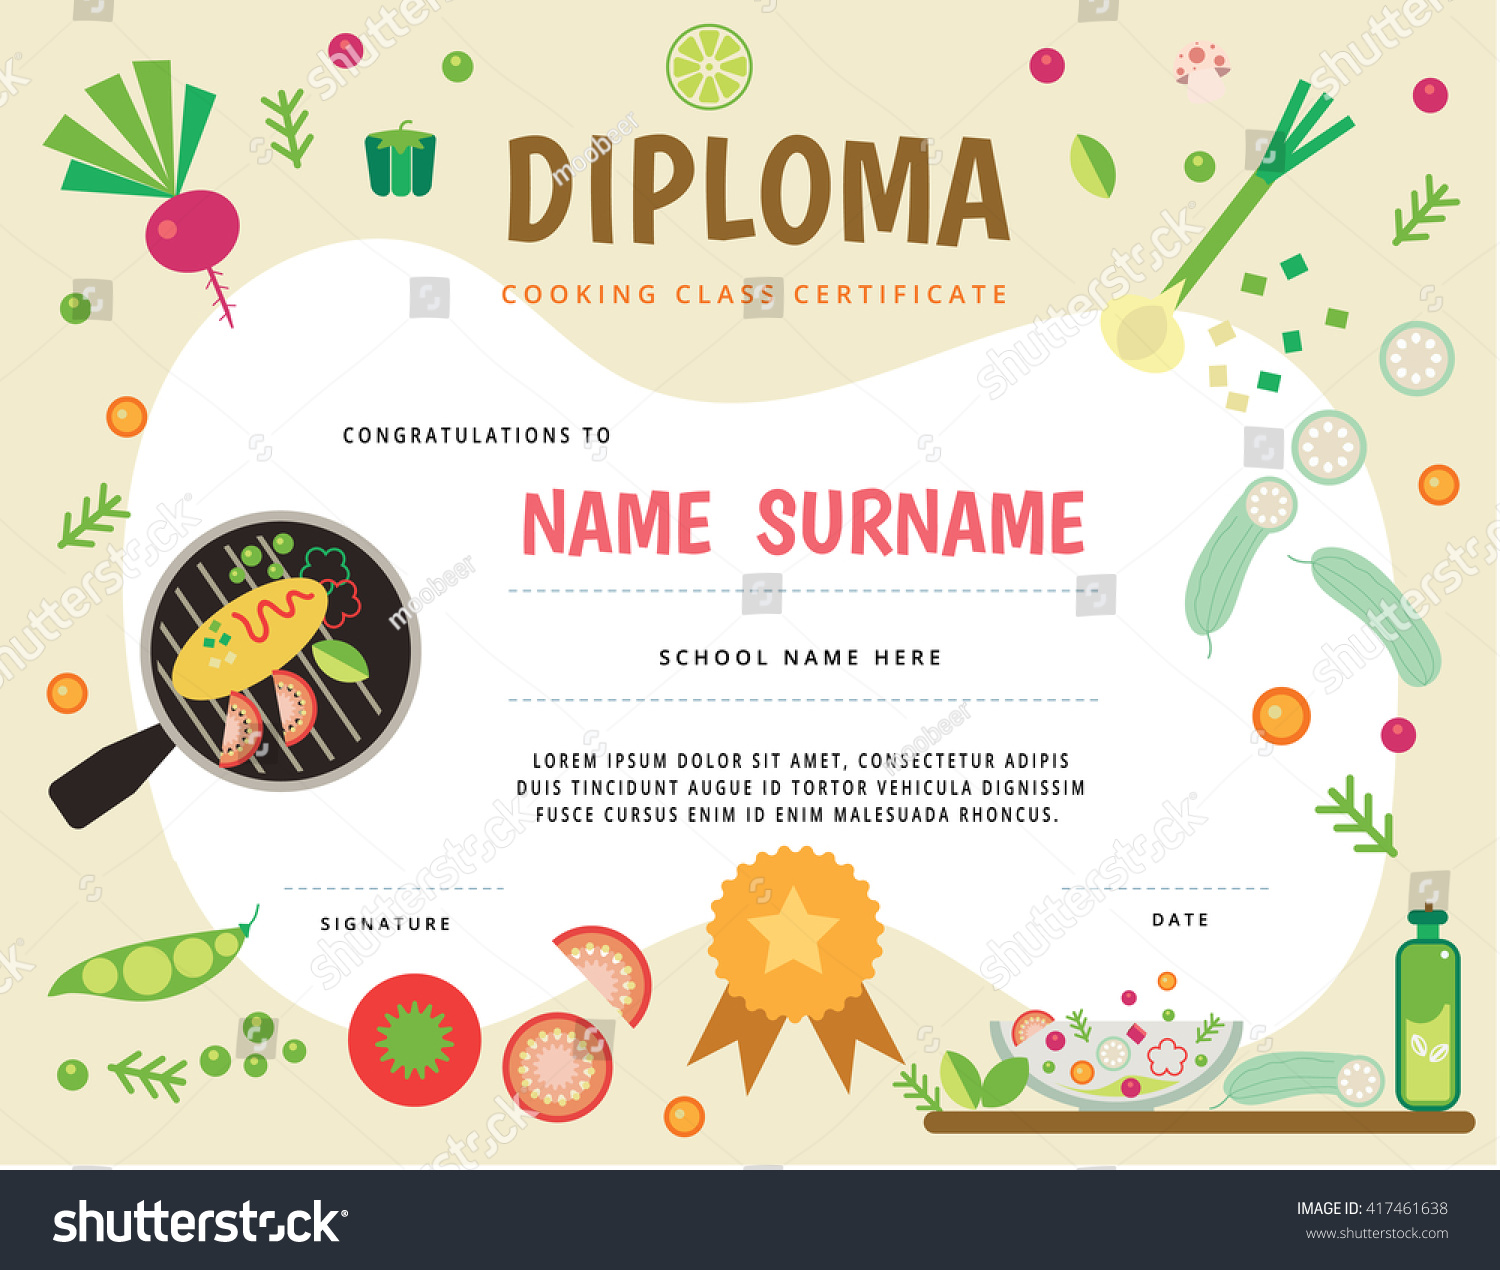 Cooking School Kids Diploma Certificate Stock Vector 417461638 - Shutterstock